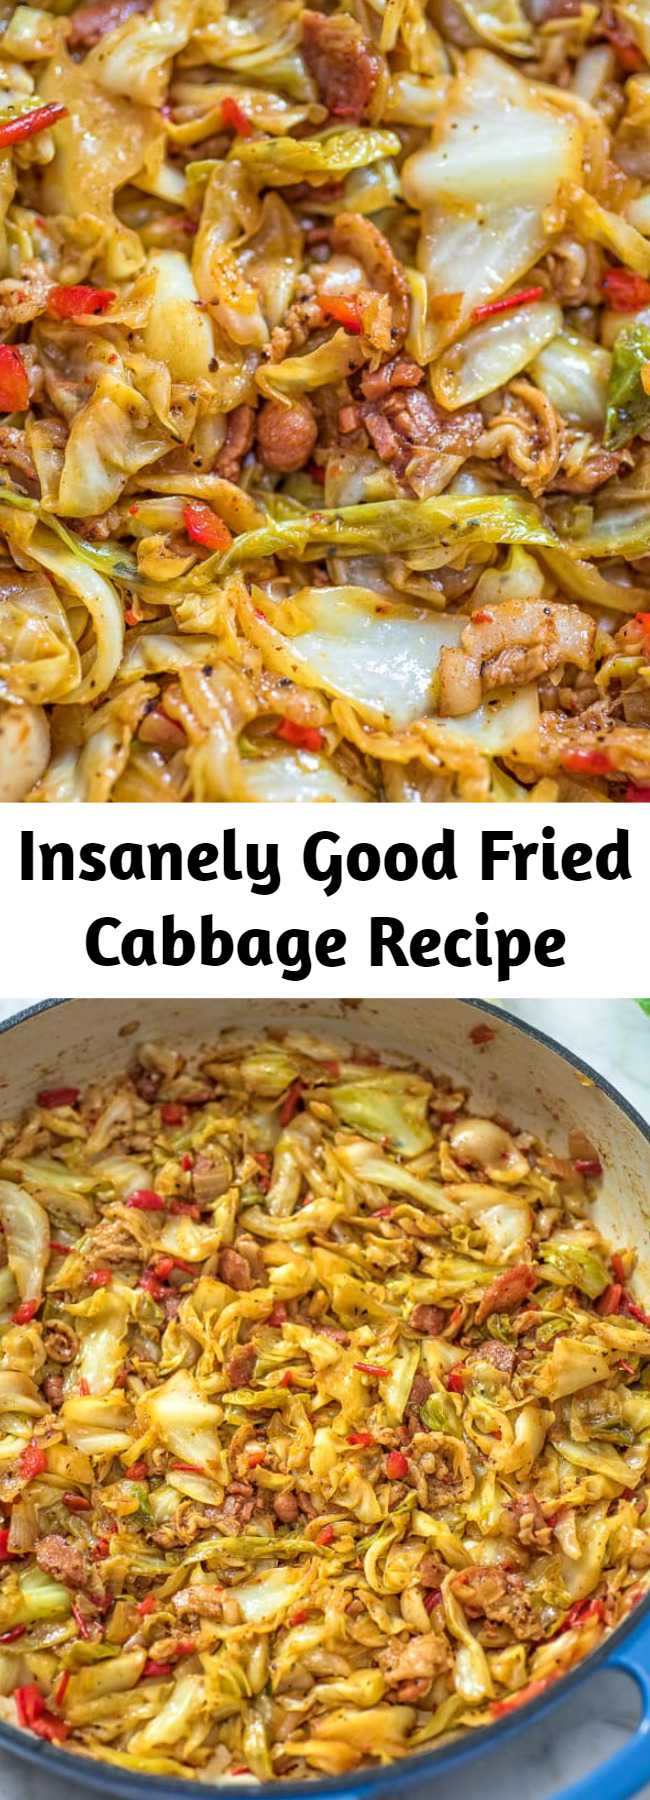 Insanely Good Fried Cabbage Recipe - This Fried Cabbage recipe is insanely good! Made with bacon, onion, bell pepper, and a touch of hot sauce, it is easy to make, simple, and comes out perfect every time! #cabbage #dinner #thanksgiving #winter #bacon